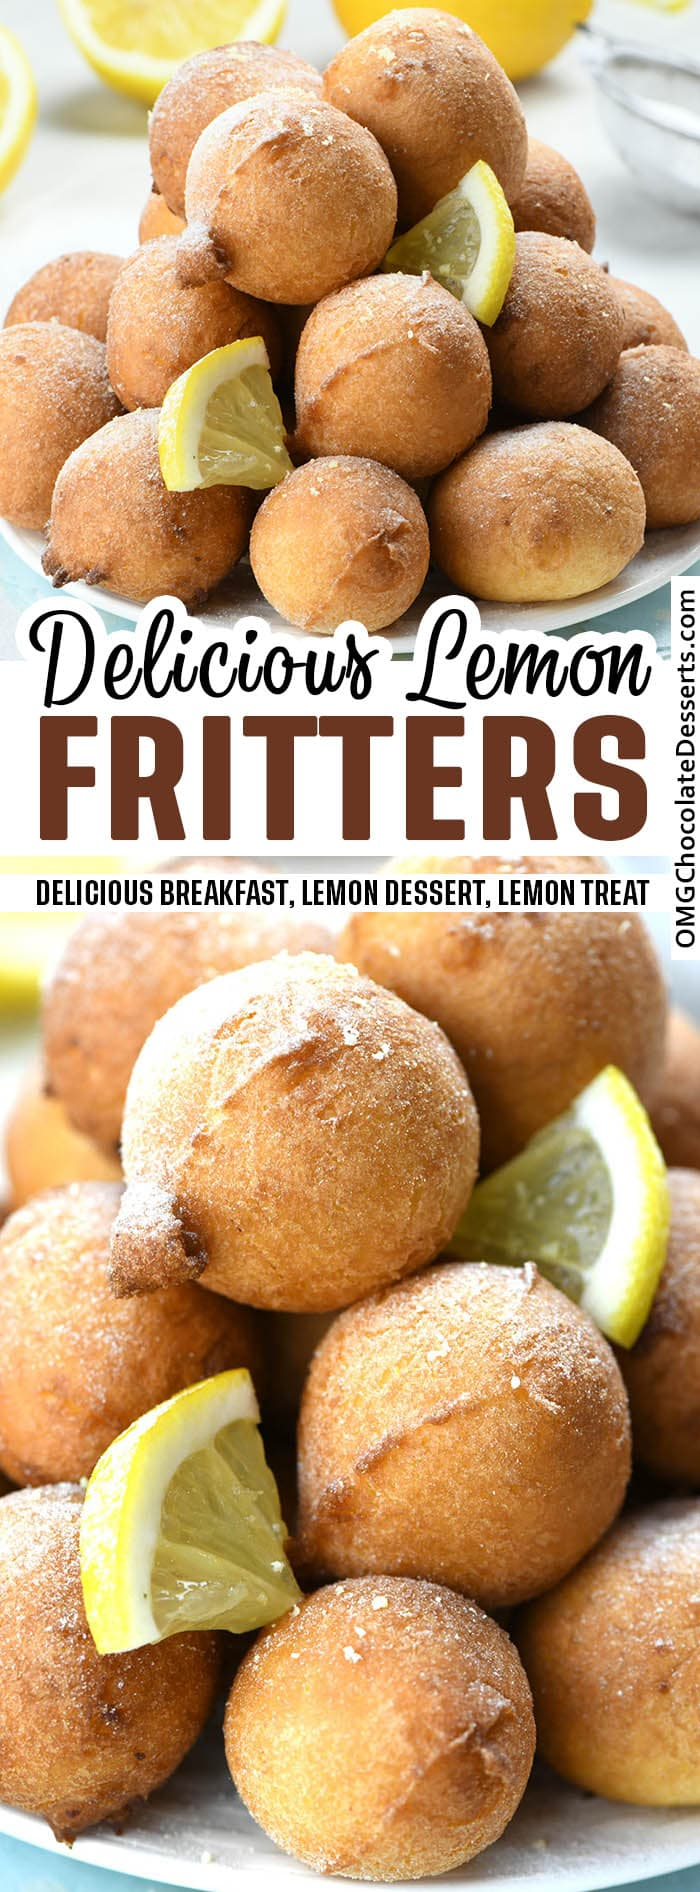 Lemon Fritters - two different images.